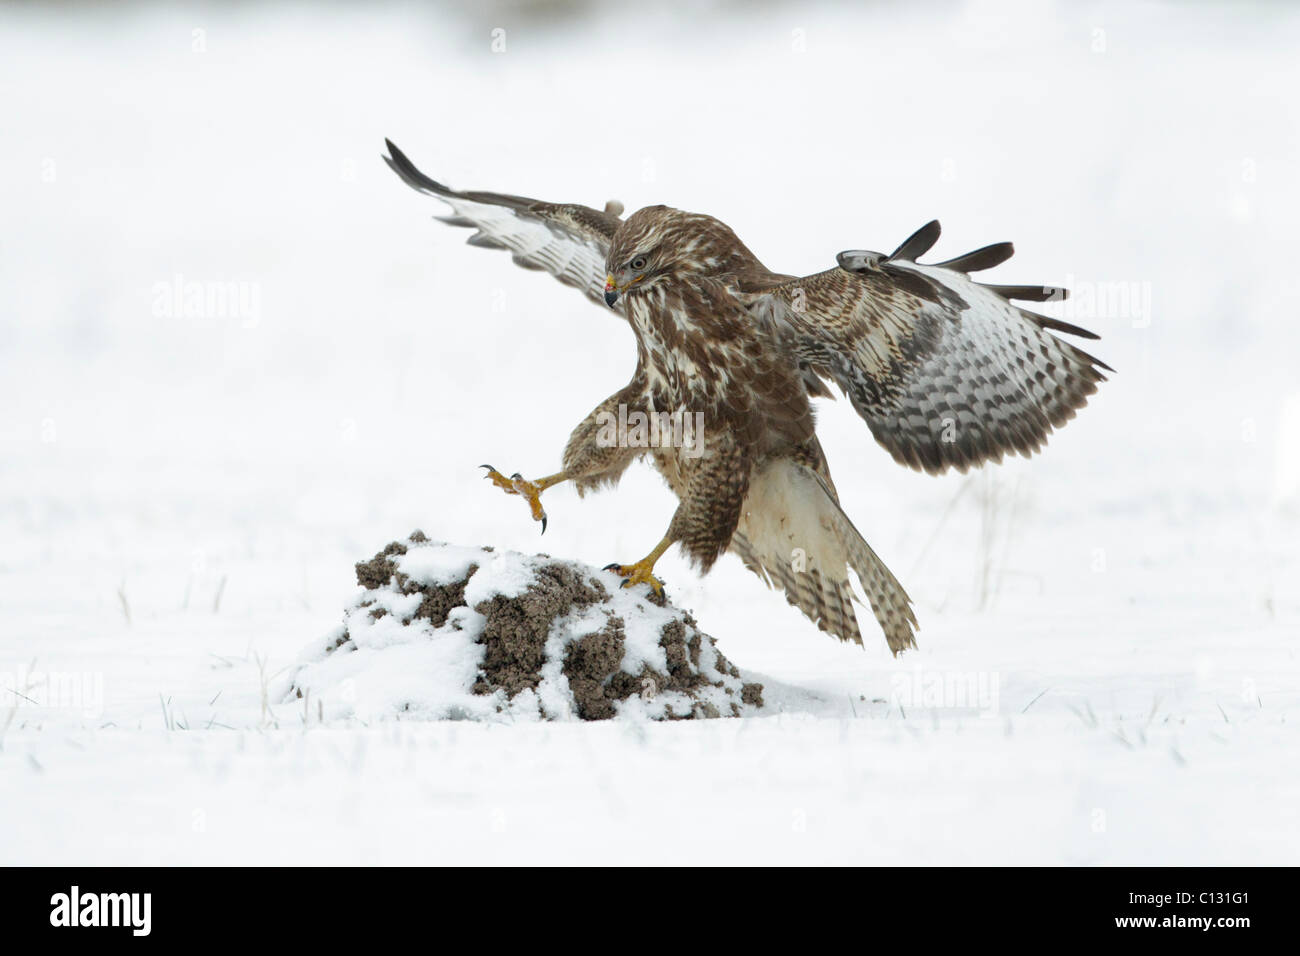 Common Buzzard (Buteo buteo), in flight landing on snow covered mole hill - Stock Image